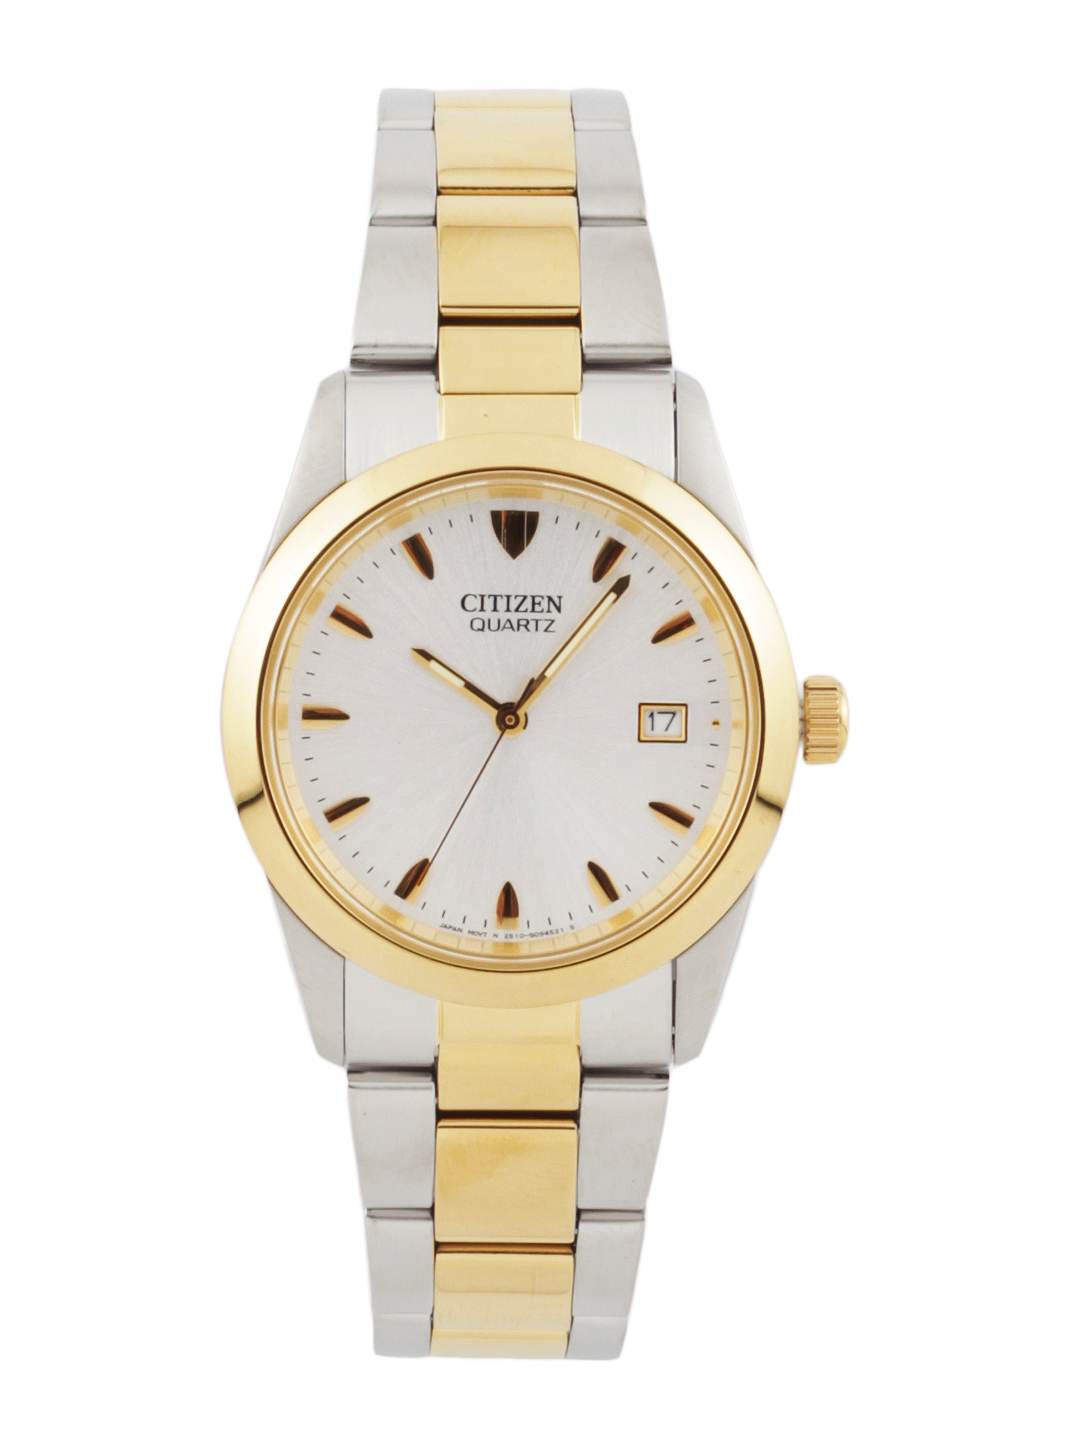 Citizen Men White Dial Watch